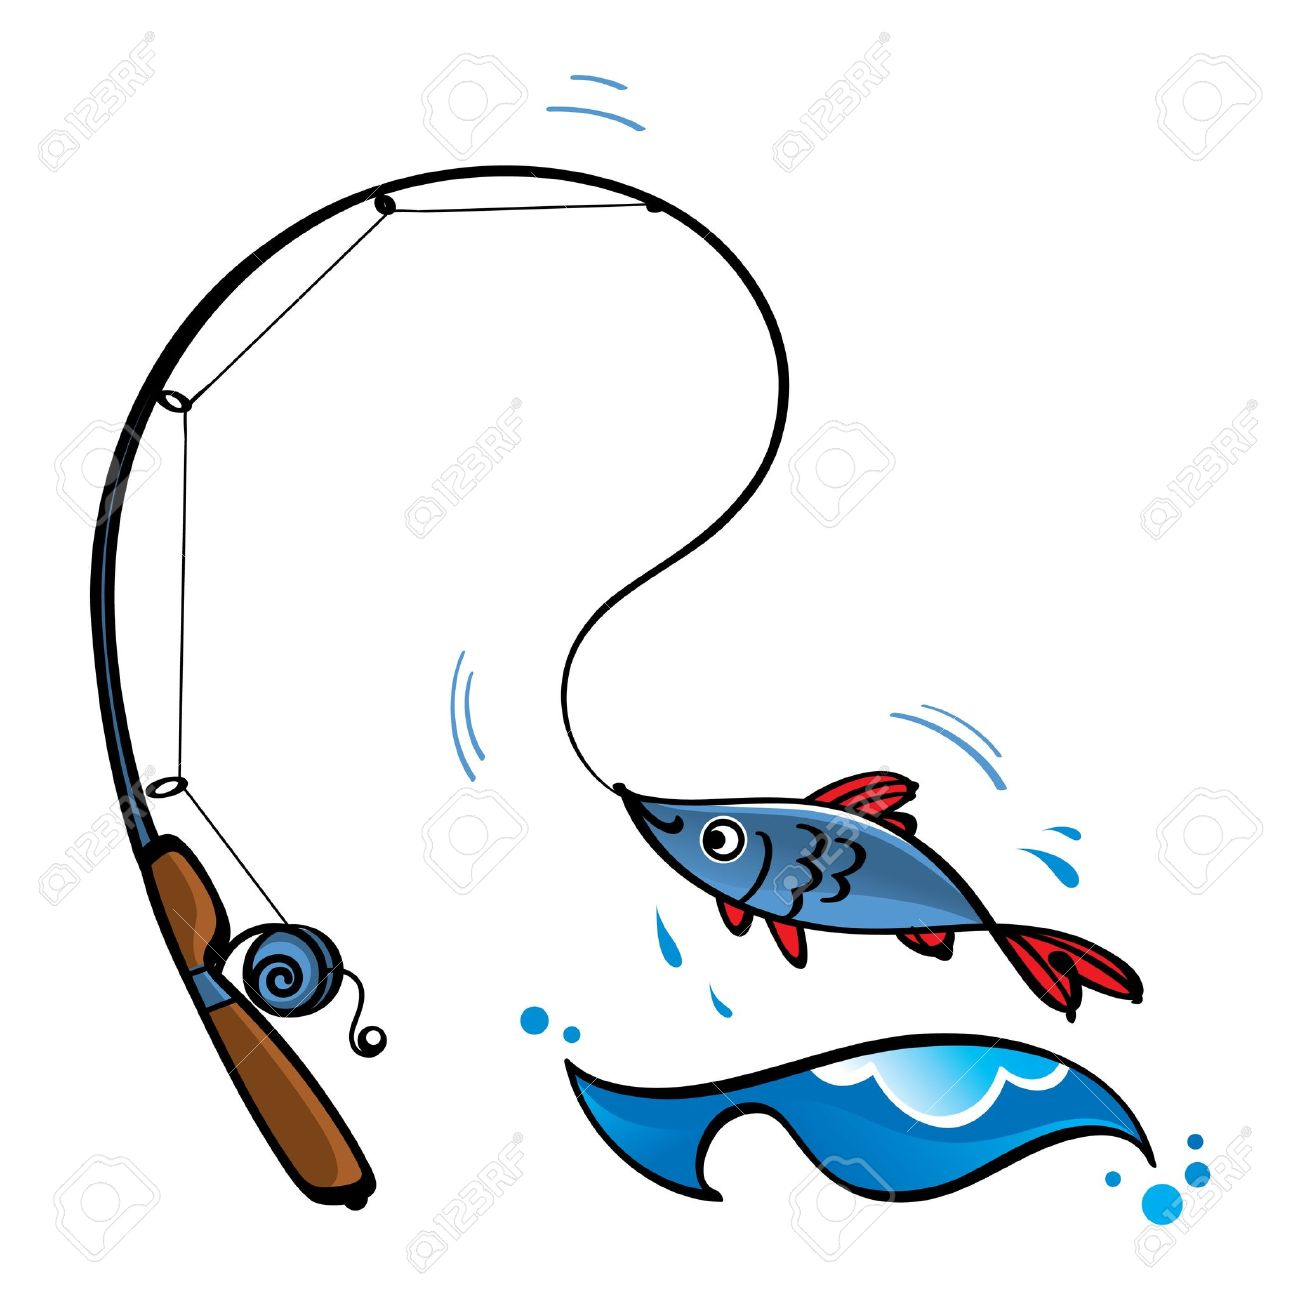 1300x1300 Fishing Rod Clipart Fishing Line